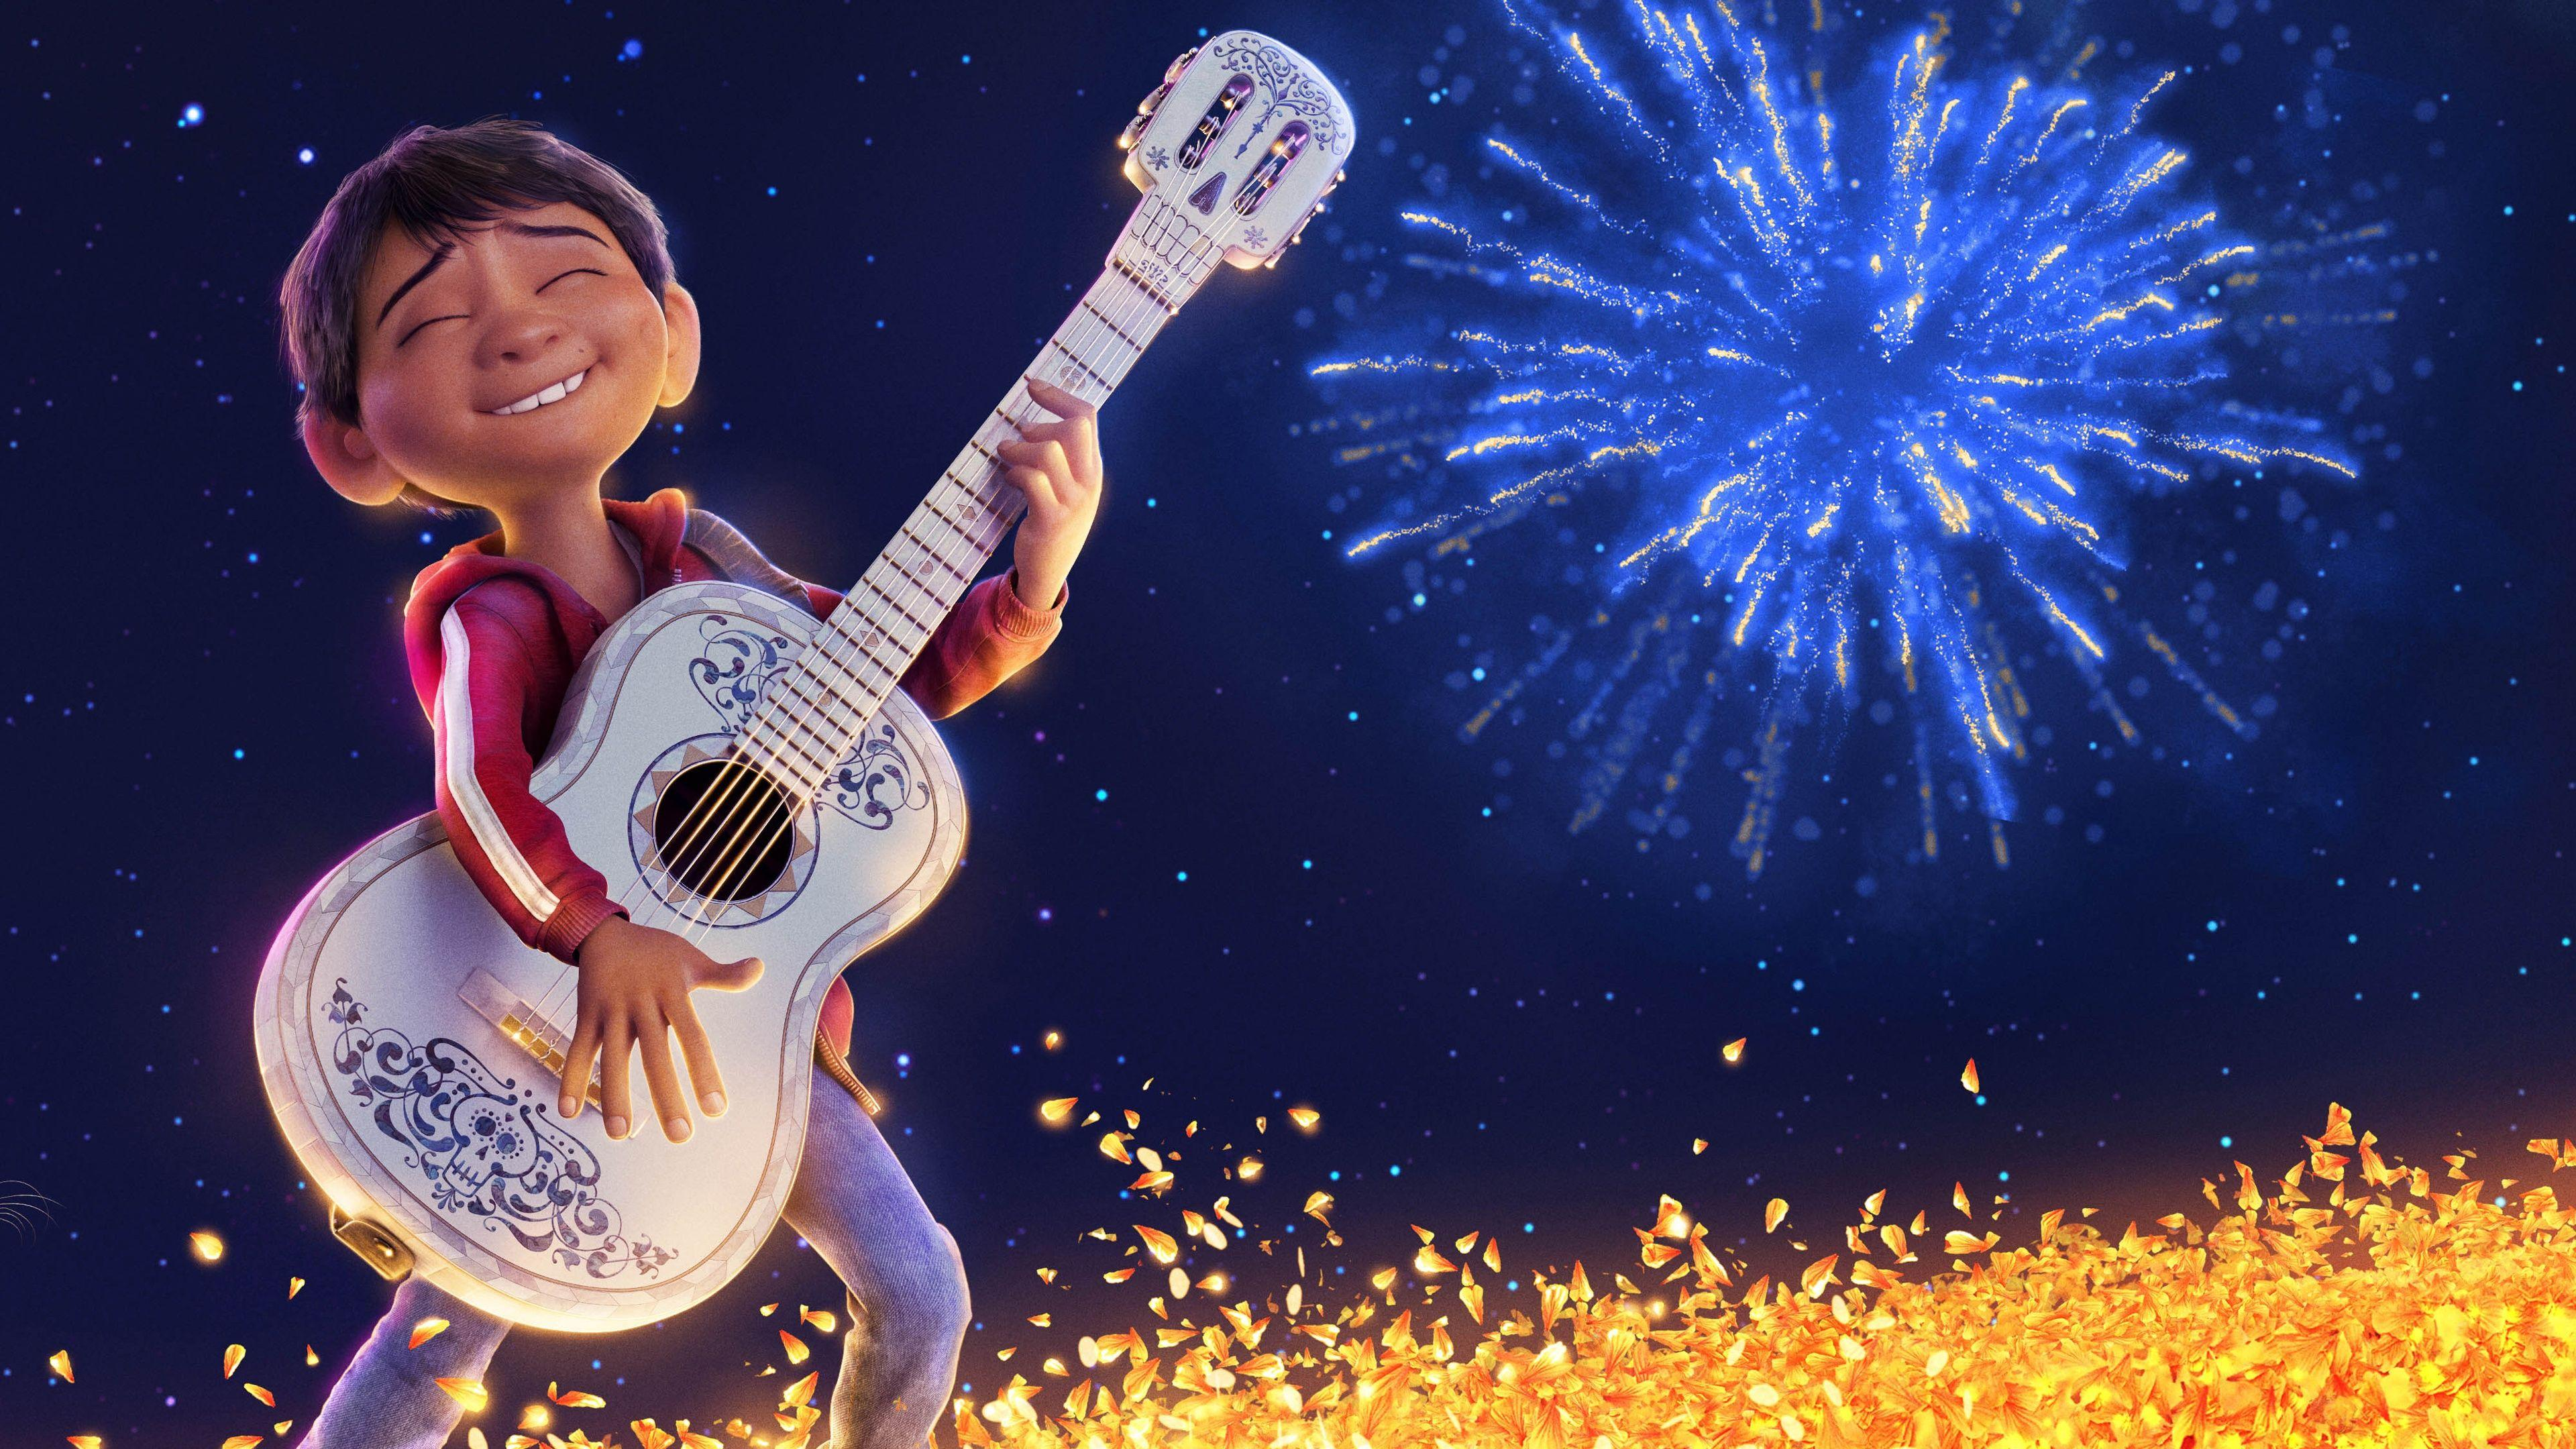 UHD 4K Coco Miguel Playing Guitar Animated Movie